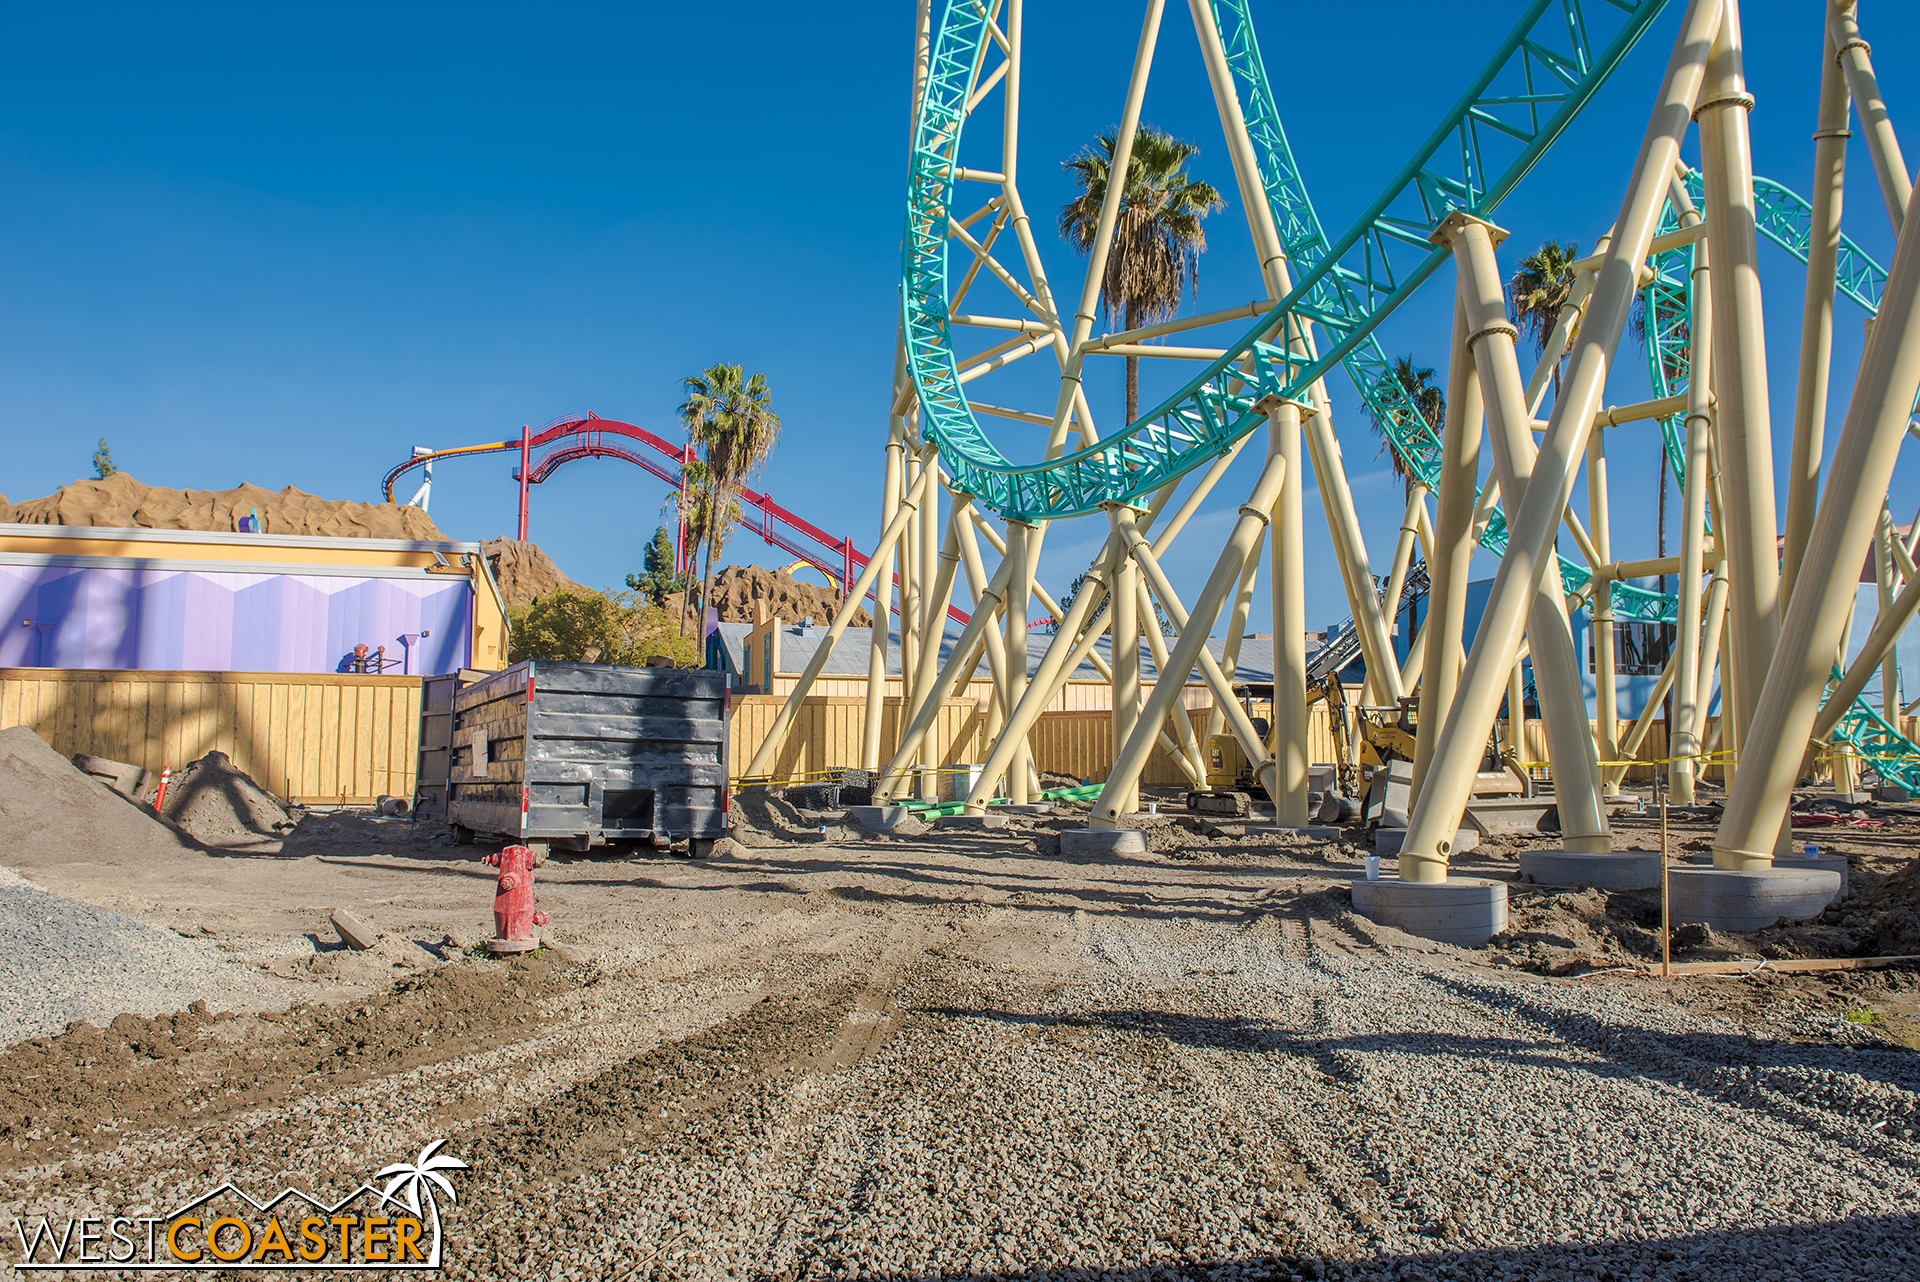 The site itself is still mostly dirt, so that will need to be beautified in the upcoming bit of time before the ride opens.